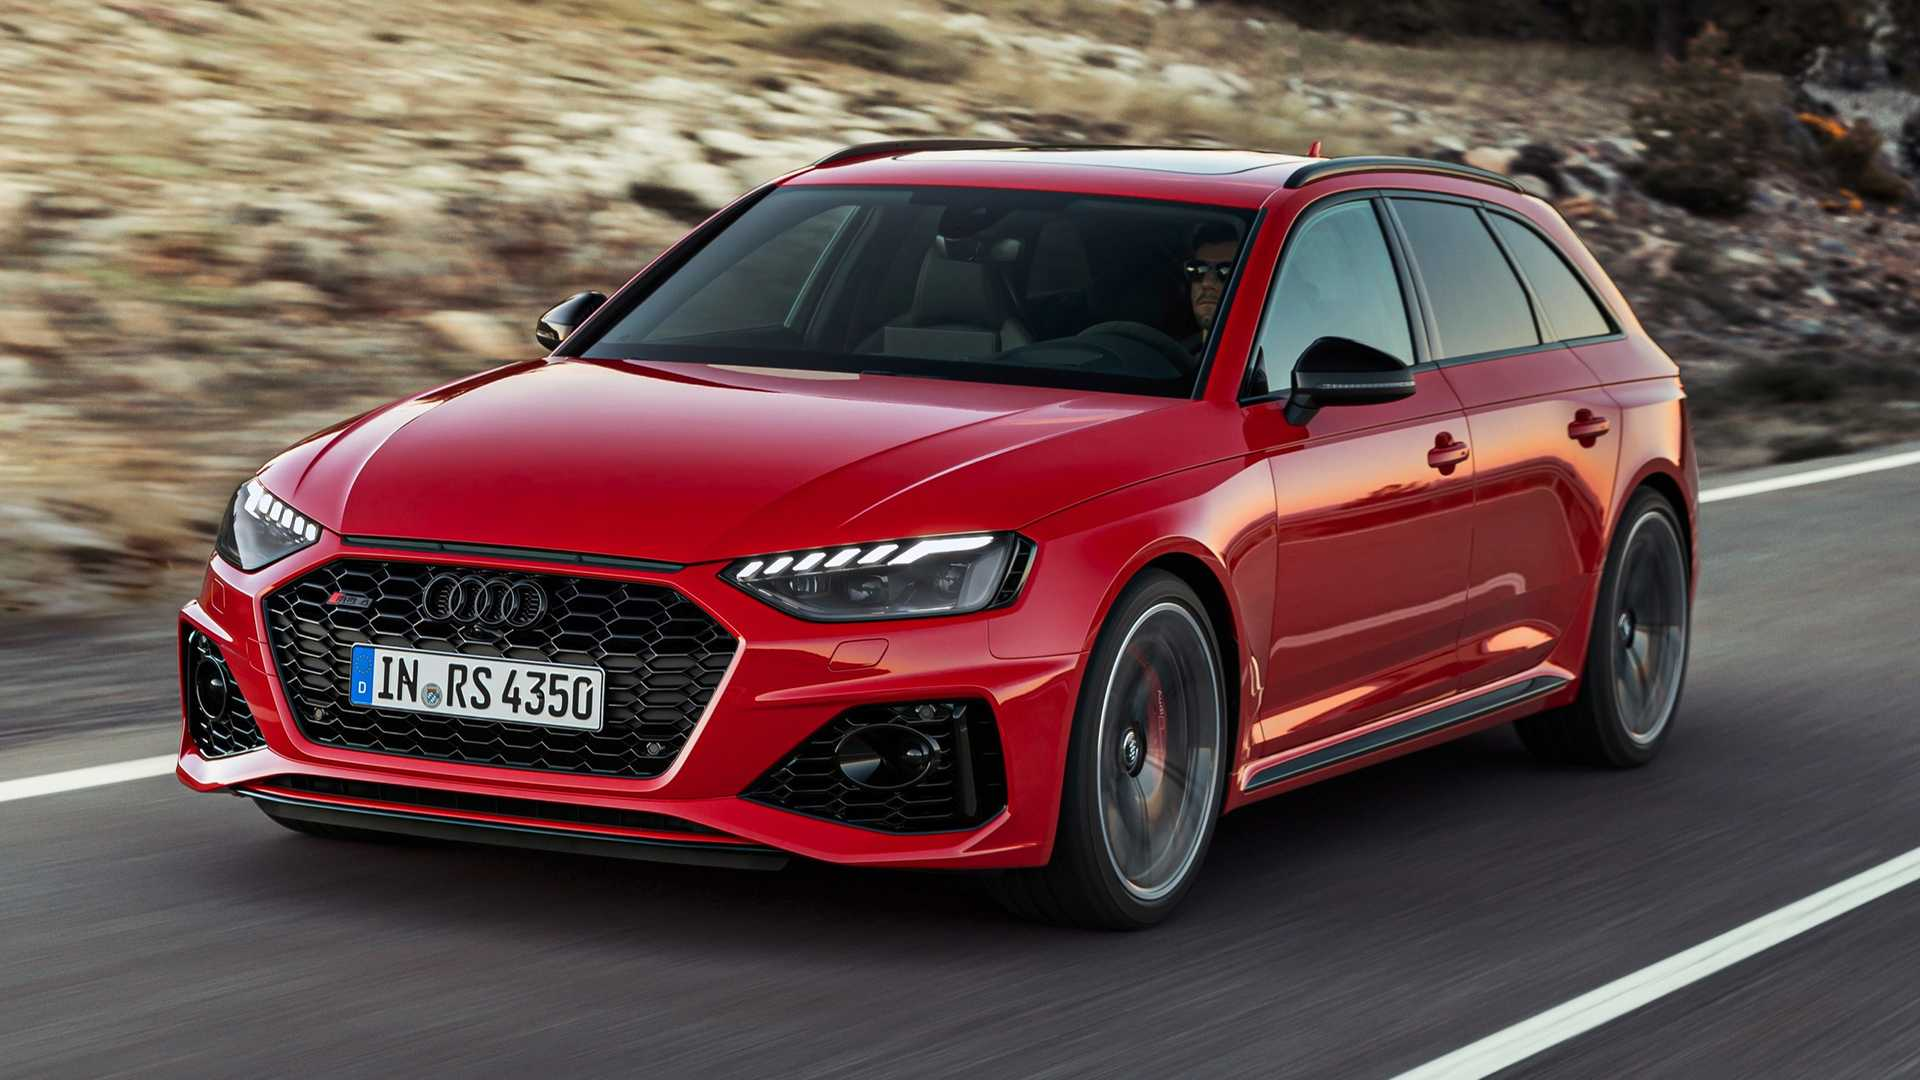 The sports subdivision of Audi said it just wanted to make life simpler for potential RS buyers by shipping every model with only one engine, eliminating the need to choose and compare.